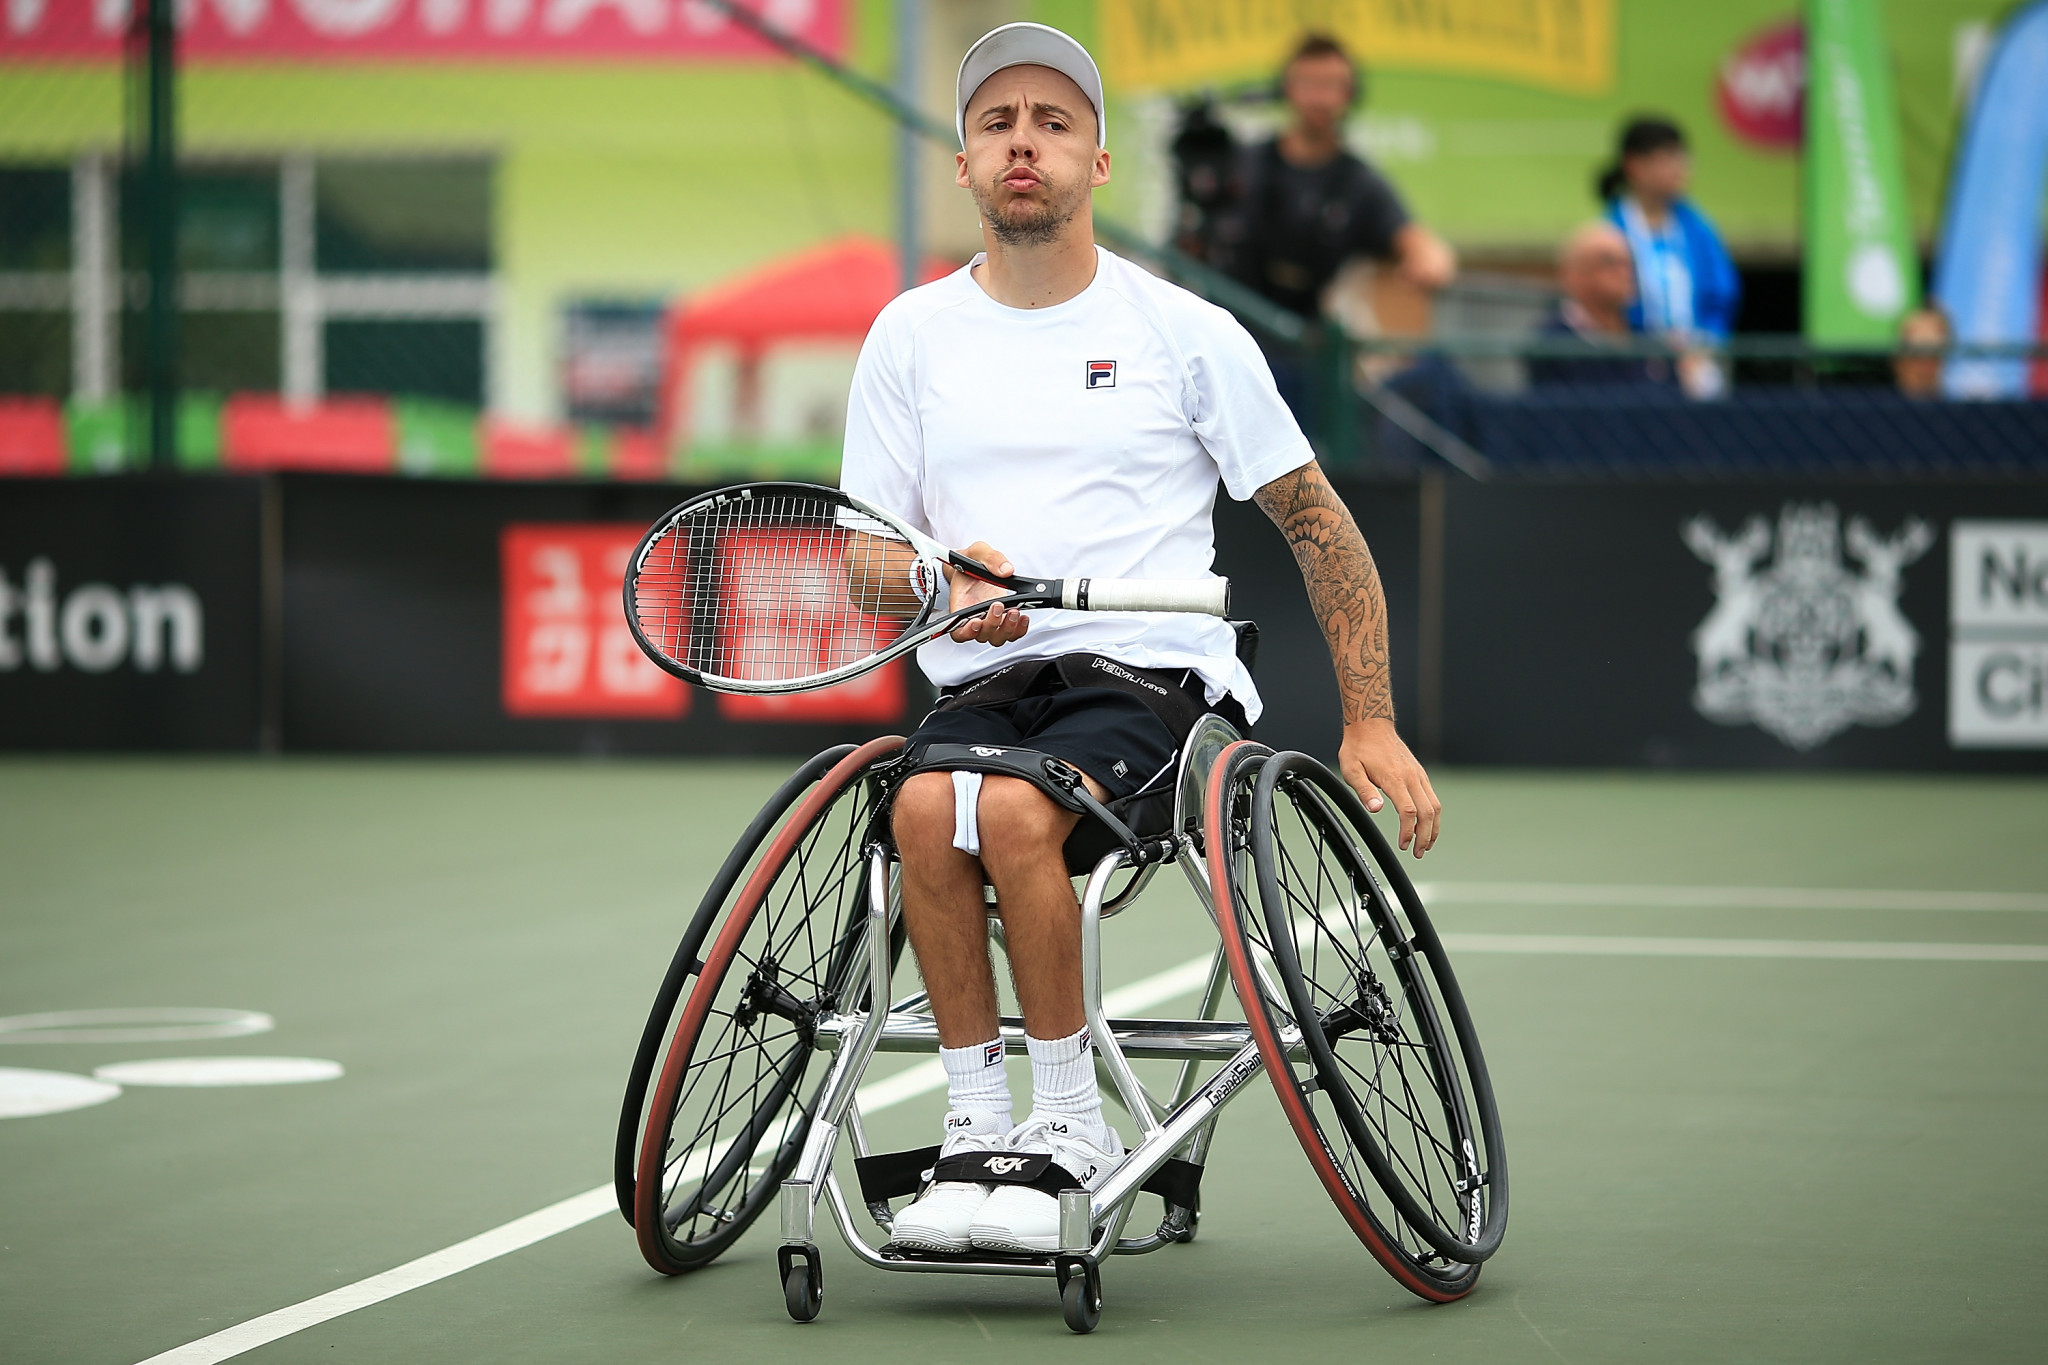 Rematch confirmed in quad doubles final at Wheelchair Doubles Masters